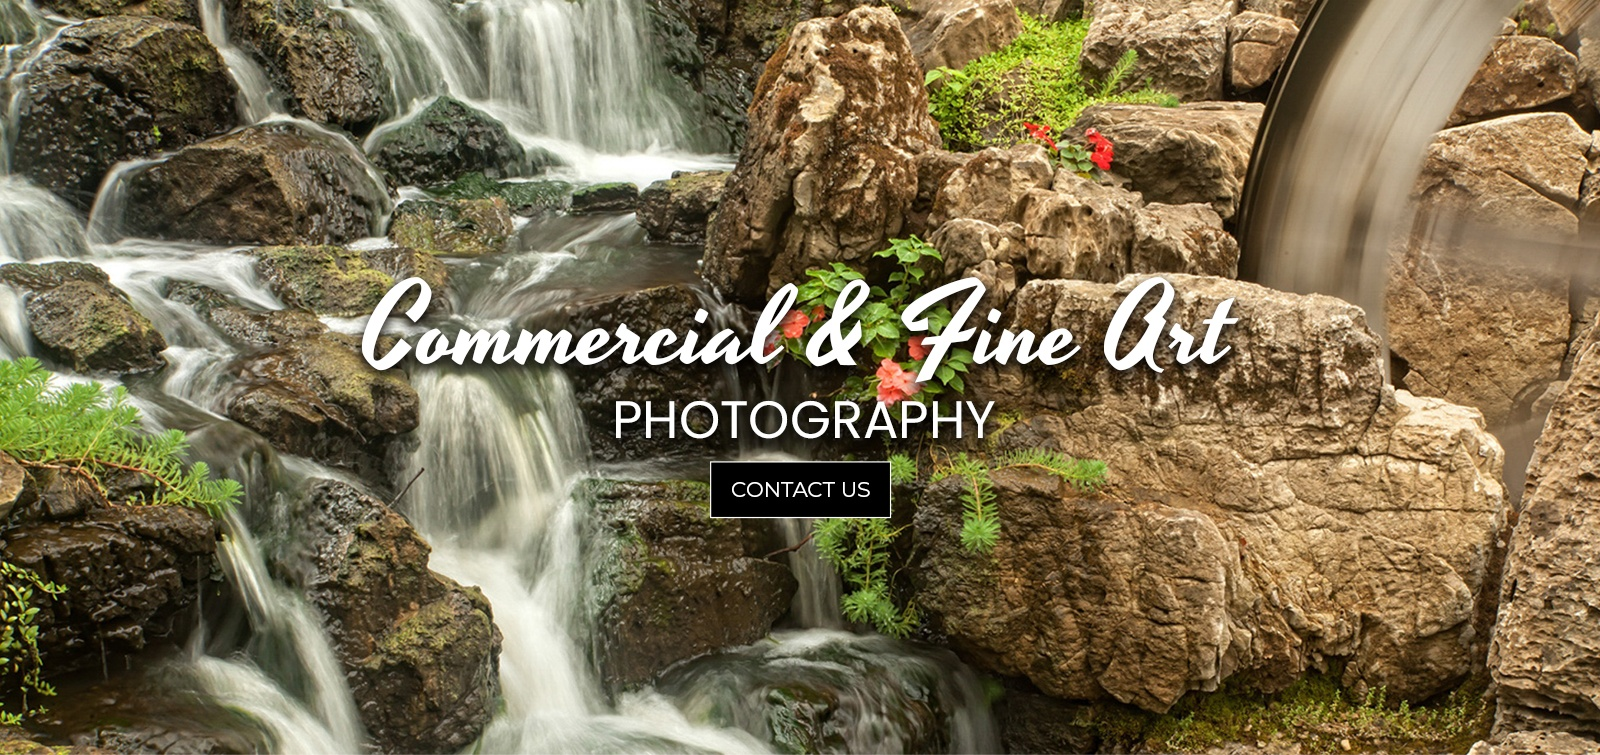 Commercial and Fine Art Photography St. Louis by Wildwood Photographic Arts